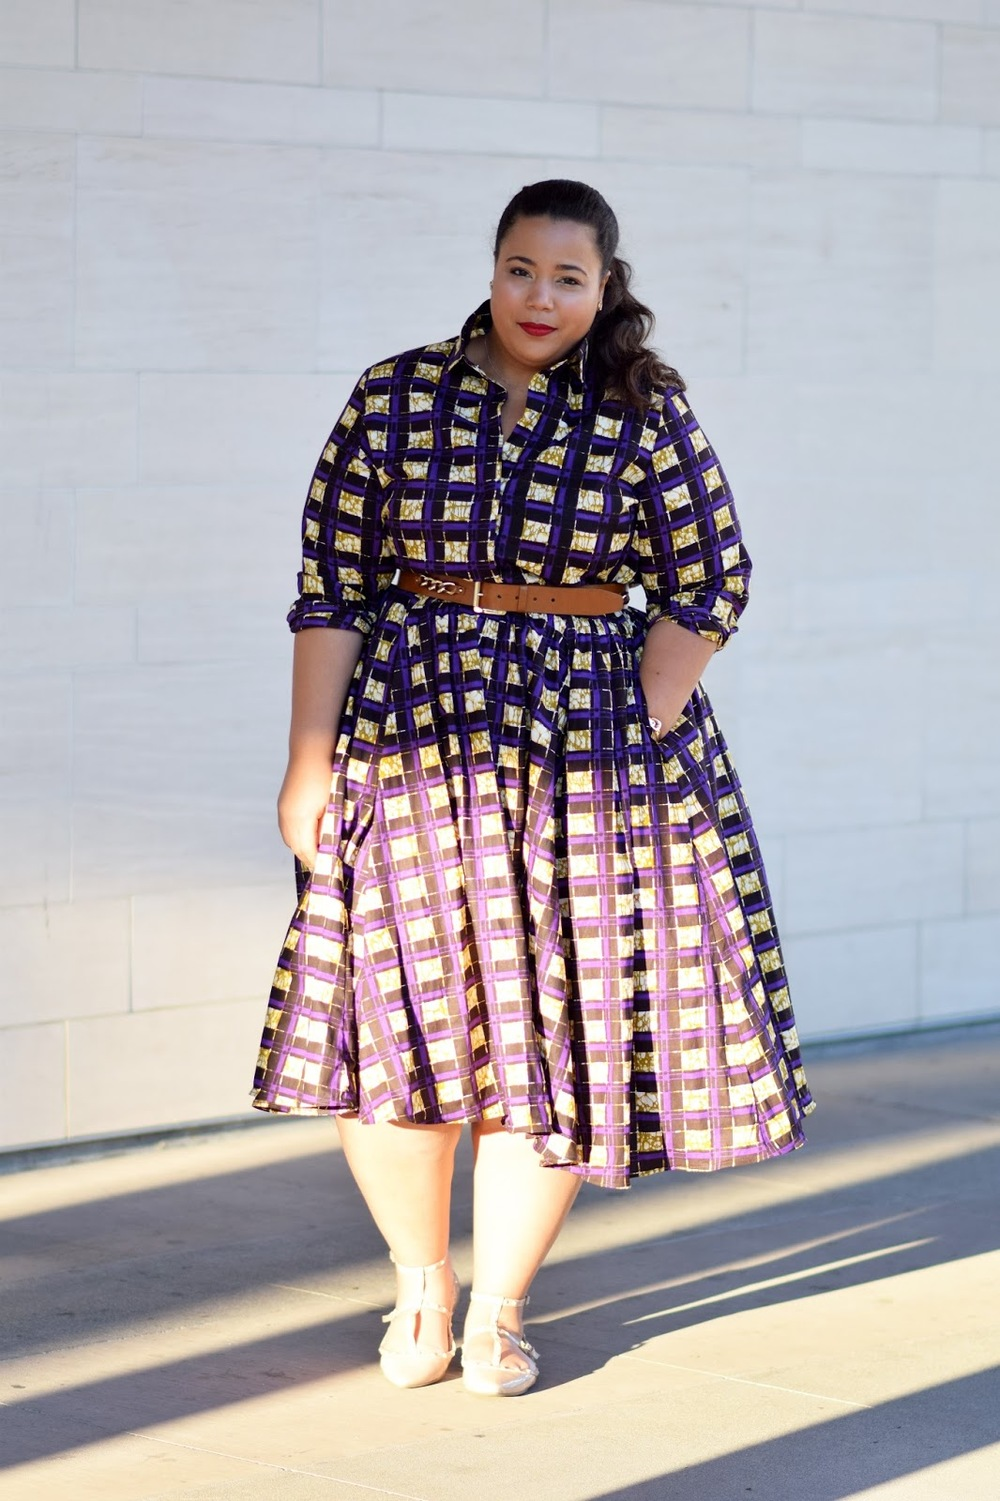 Photo credit: Curvy Blogger @GarnerStyle Find her at www.garnerstyle.com